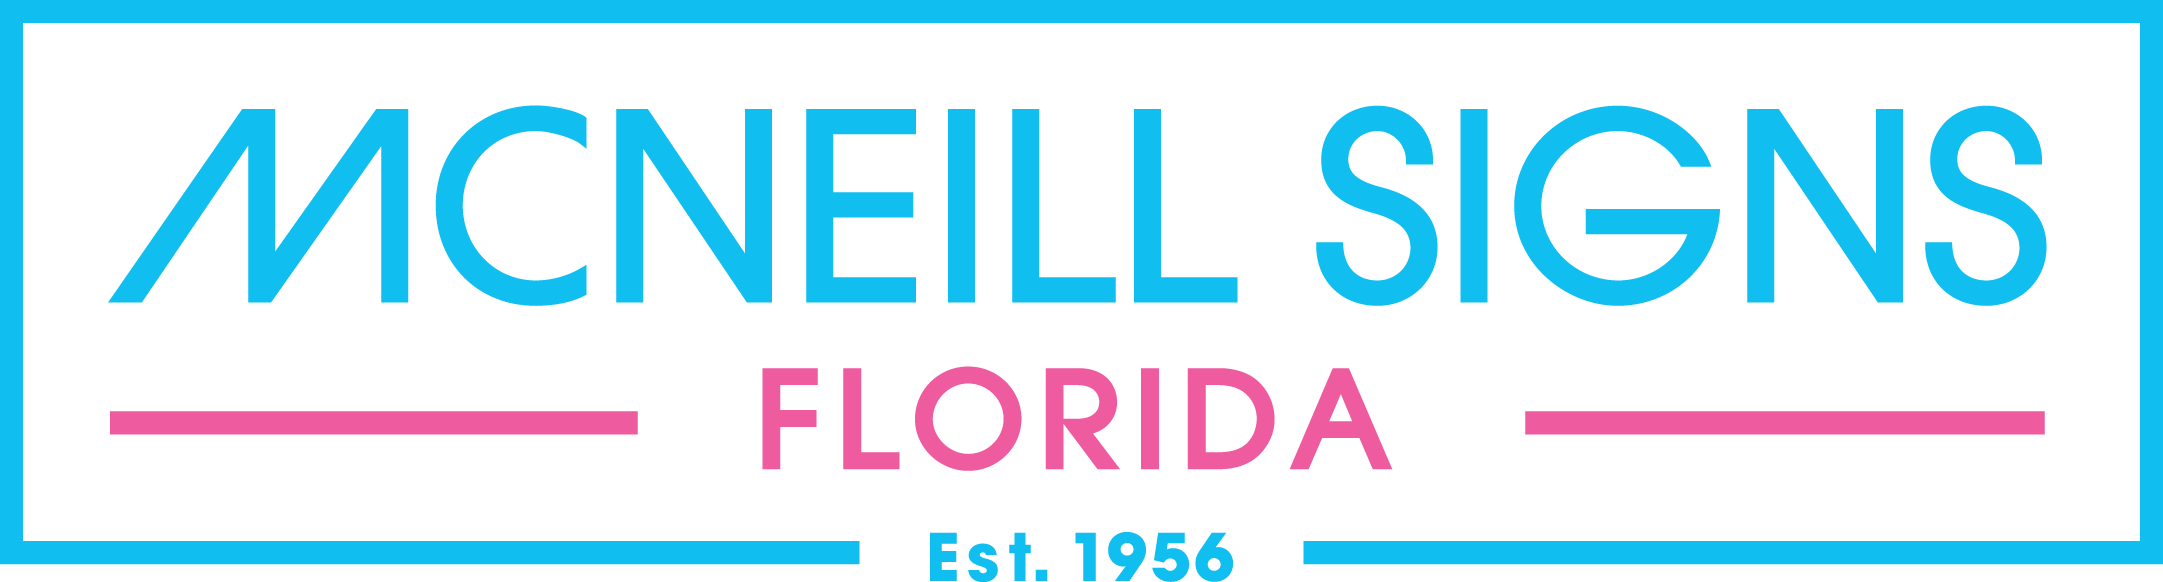 McNeill Signs FL Logo